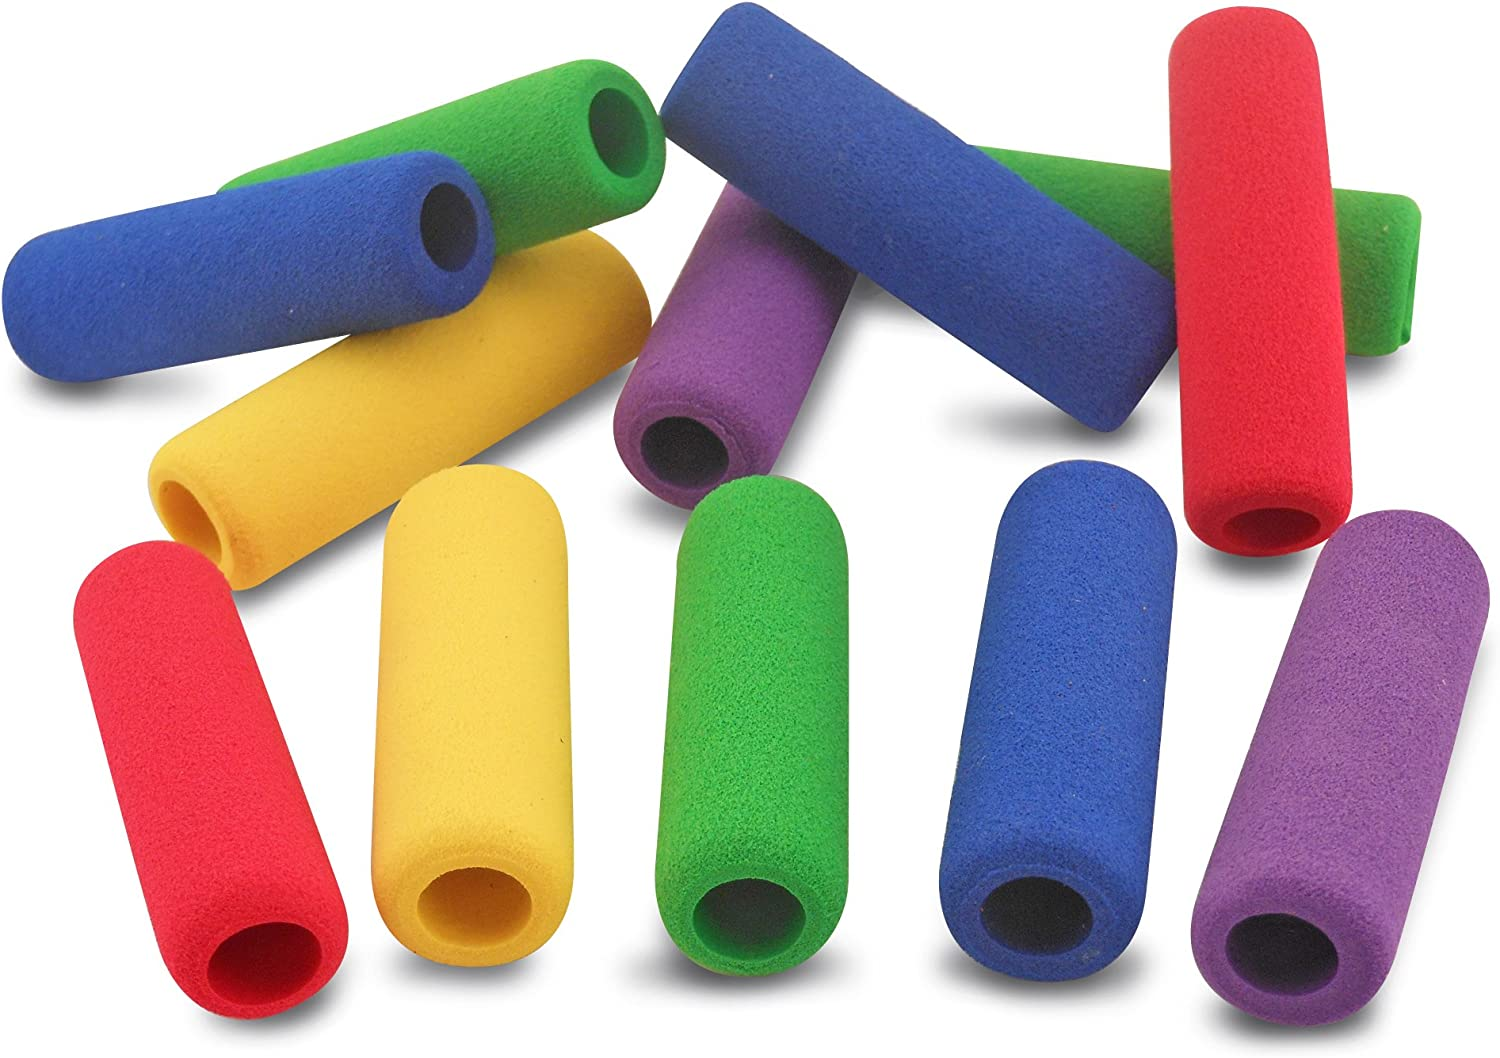 The Classics 12-Pack Soft Foam Pencil Grips, Assorted Colors, 1.5-Inch Long (TPG-16412)